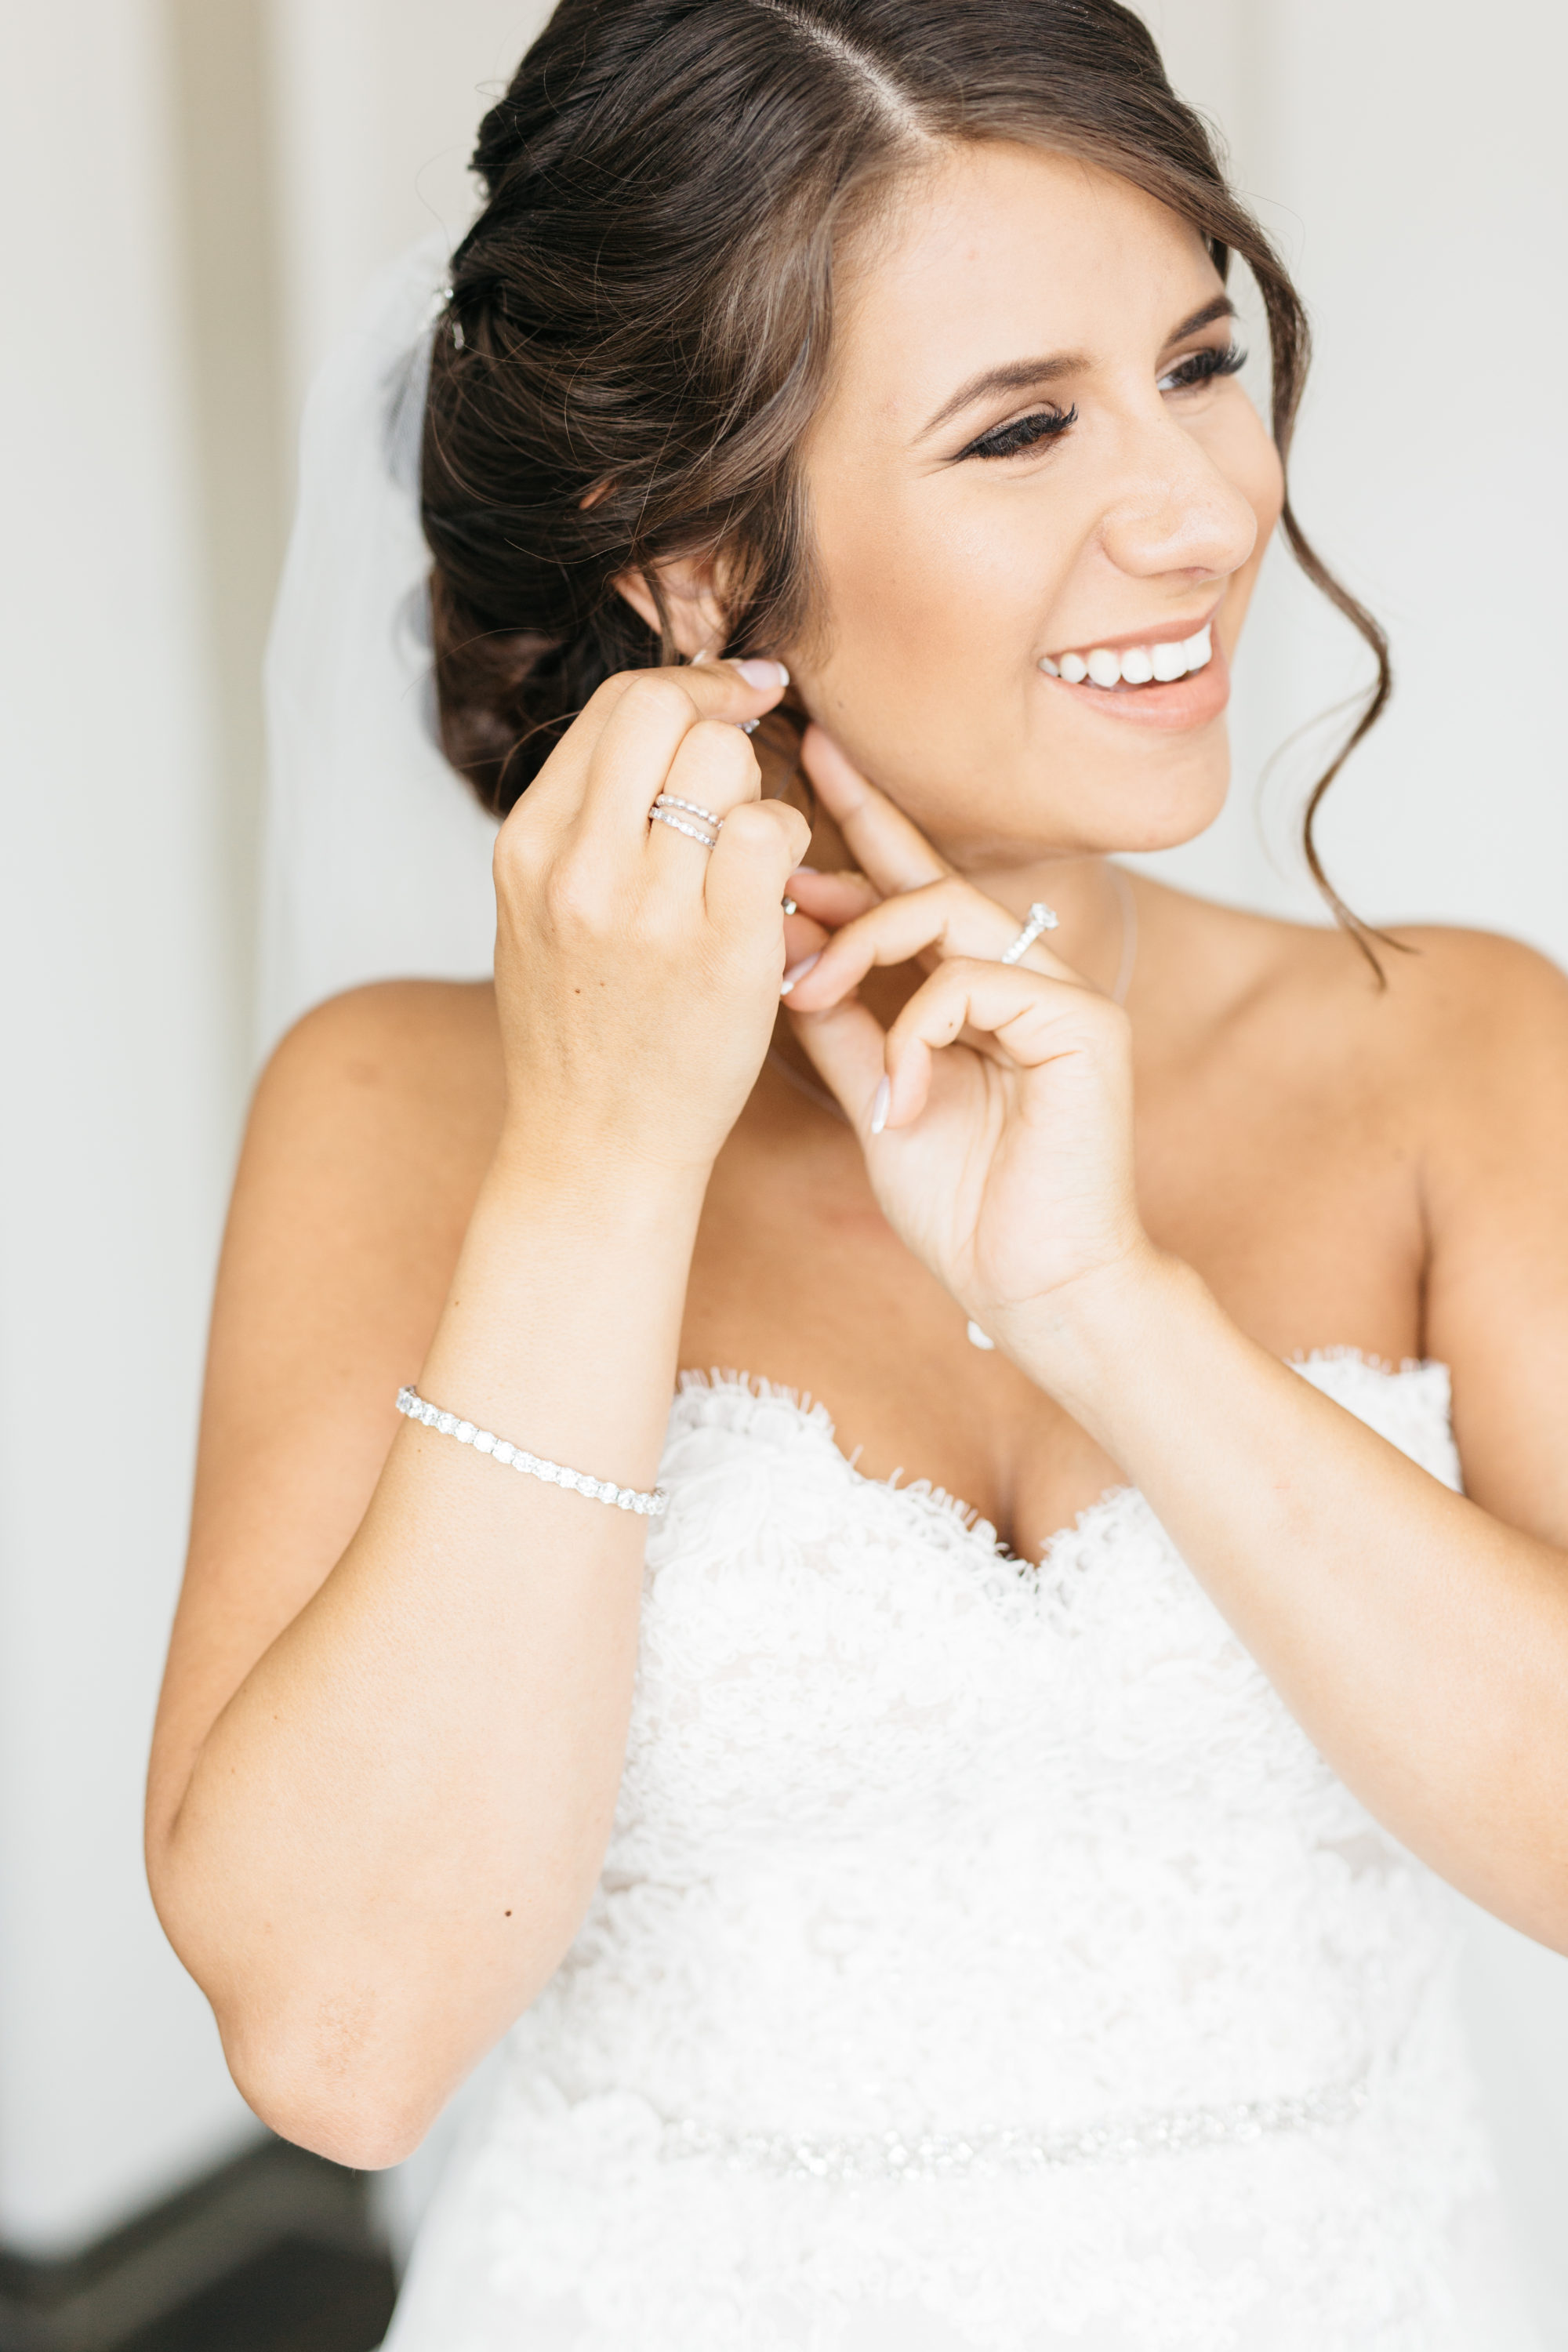 Bride putting on her jewellery